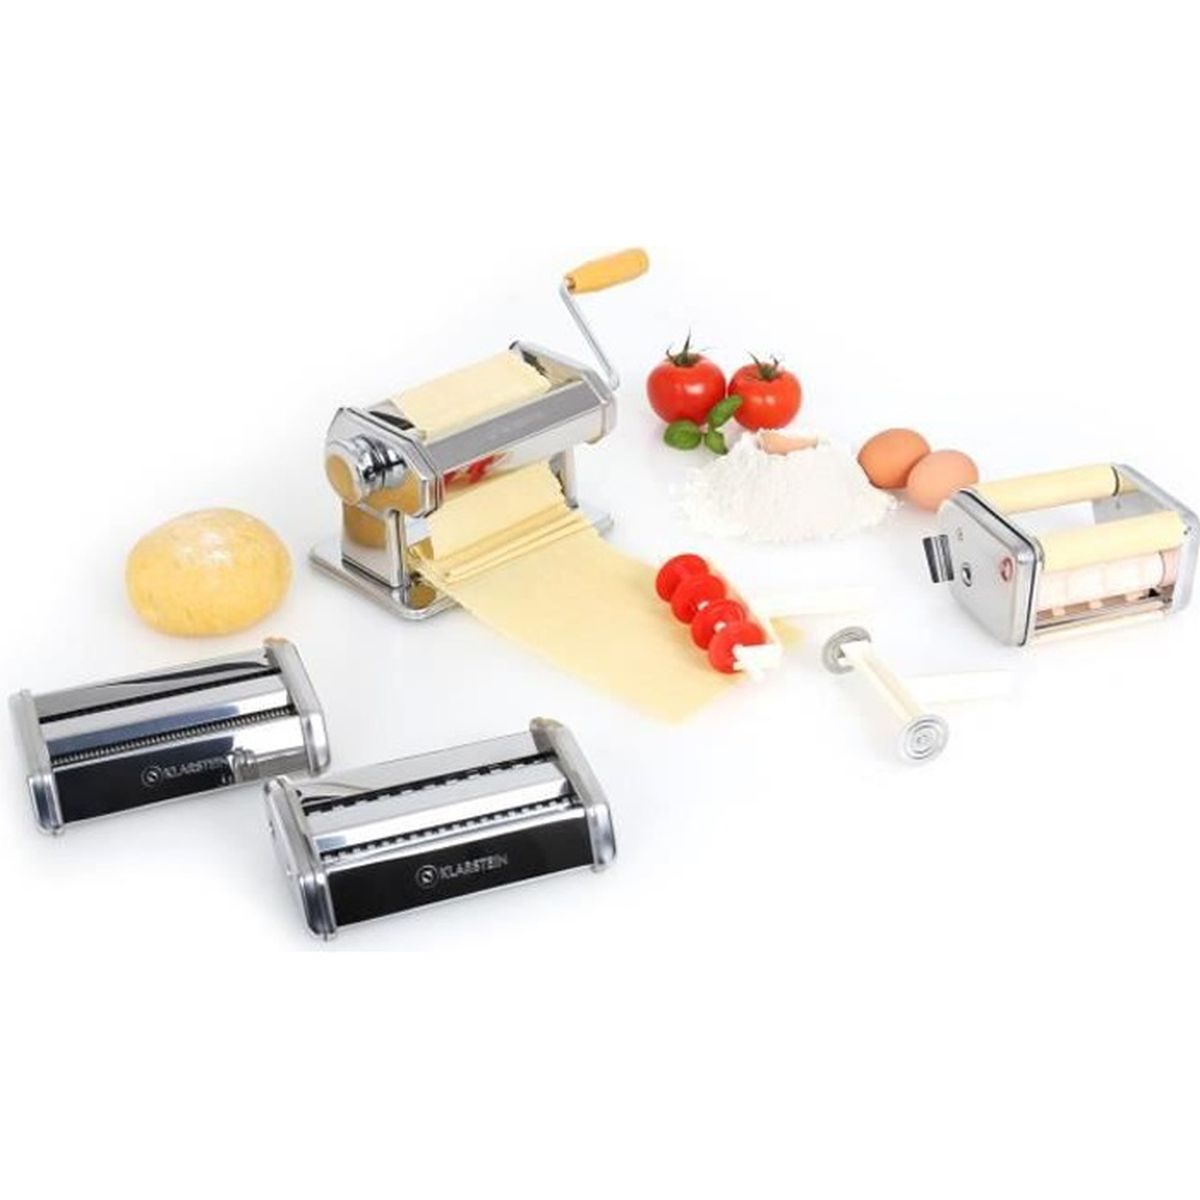 klarstein pasta maker machine a pate appareil p tes fraiches double lame avec 3 accessoires. Black Bedroom Furniture Sets. Home Design Ideas